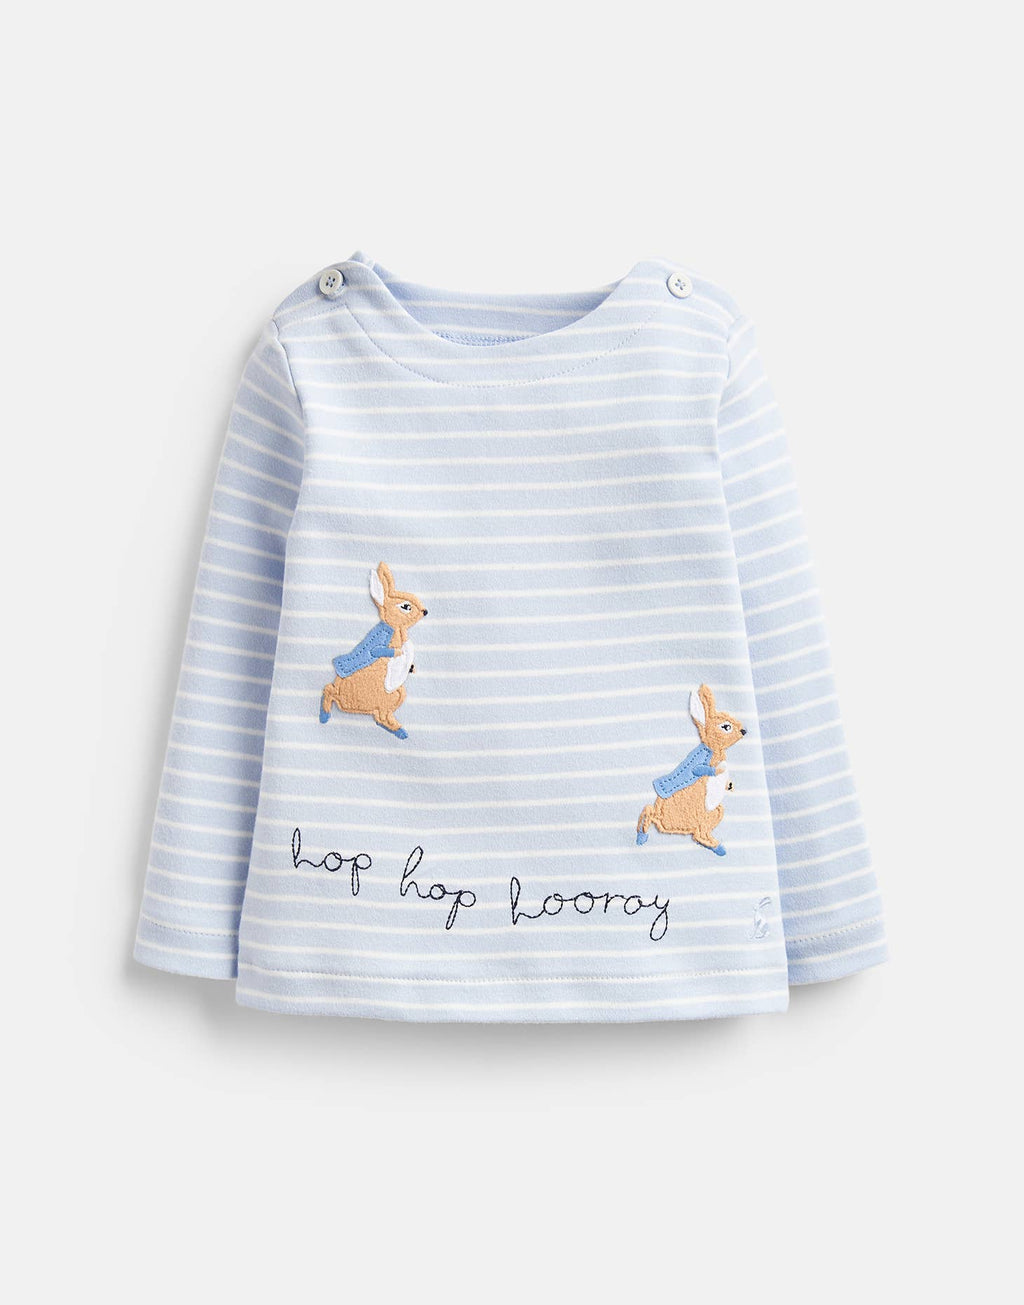 Peter Rabbit Classic Hoppy - Le Bébé Chic Boutique